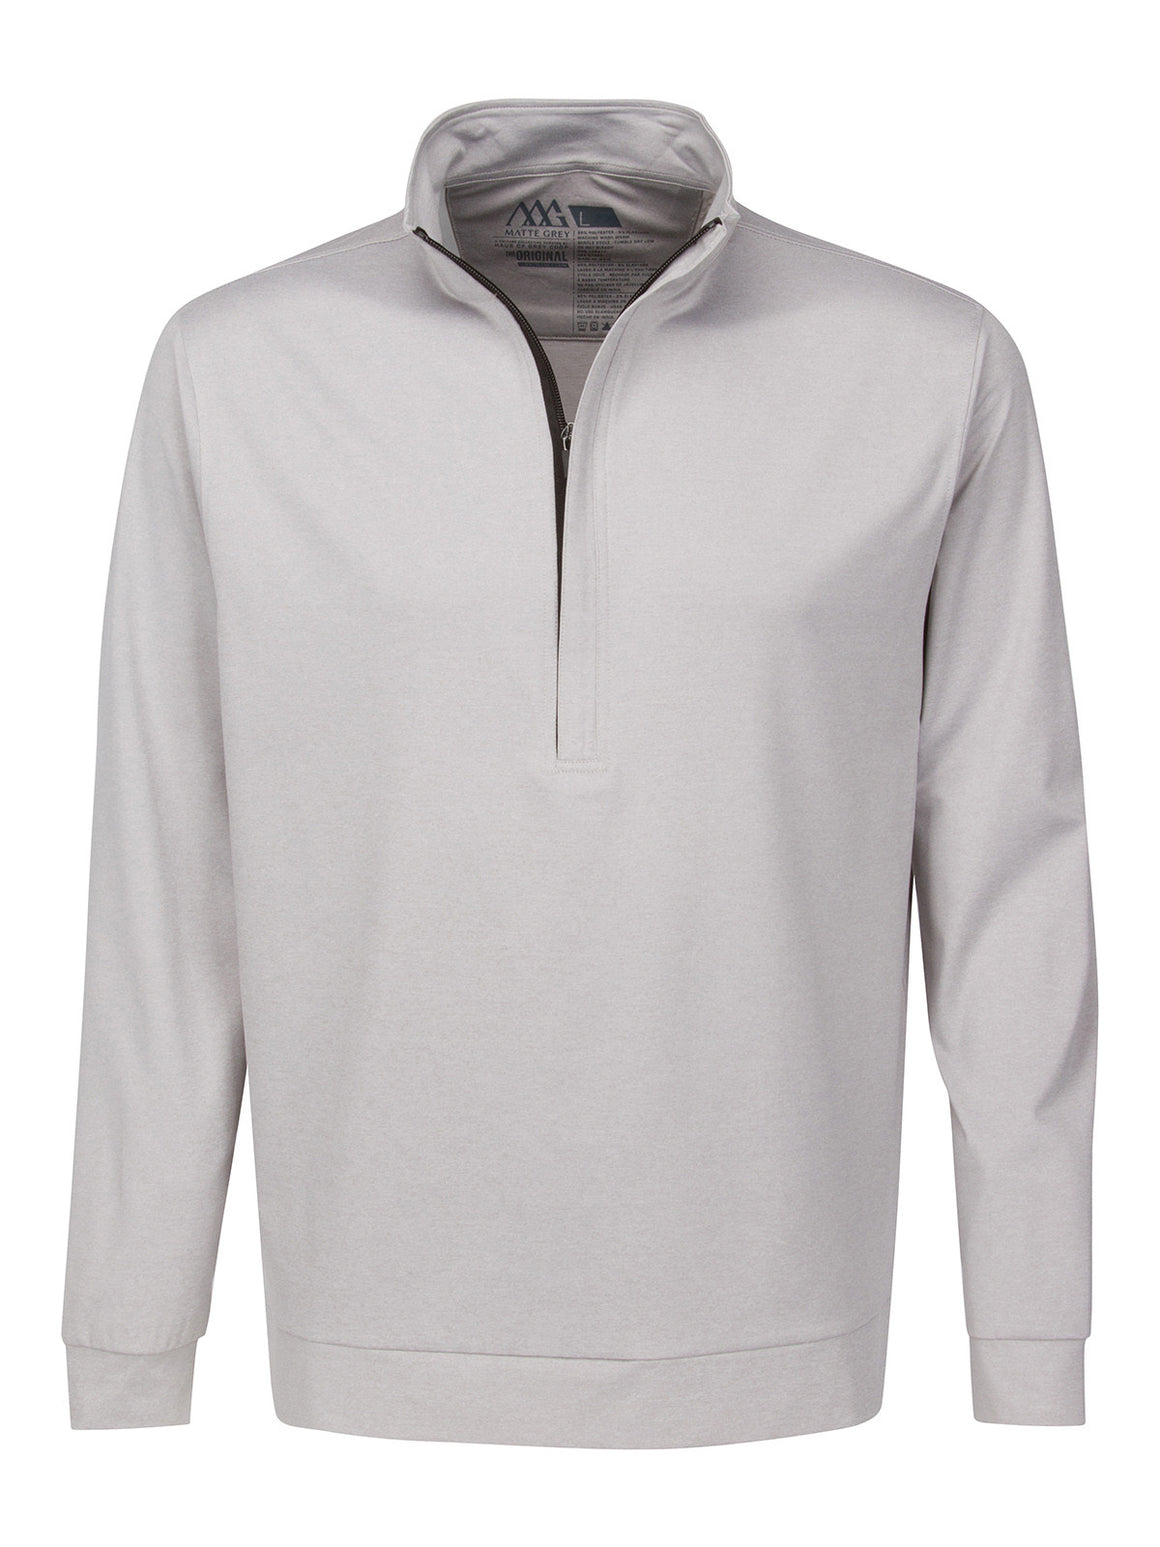 Hightower Half Zip - Gainsburo Hea